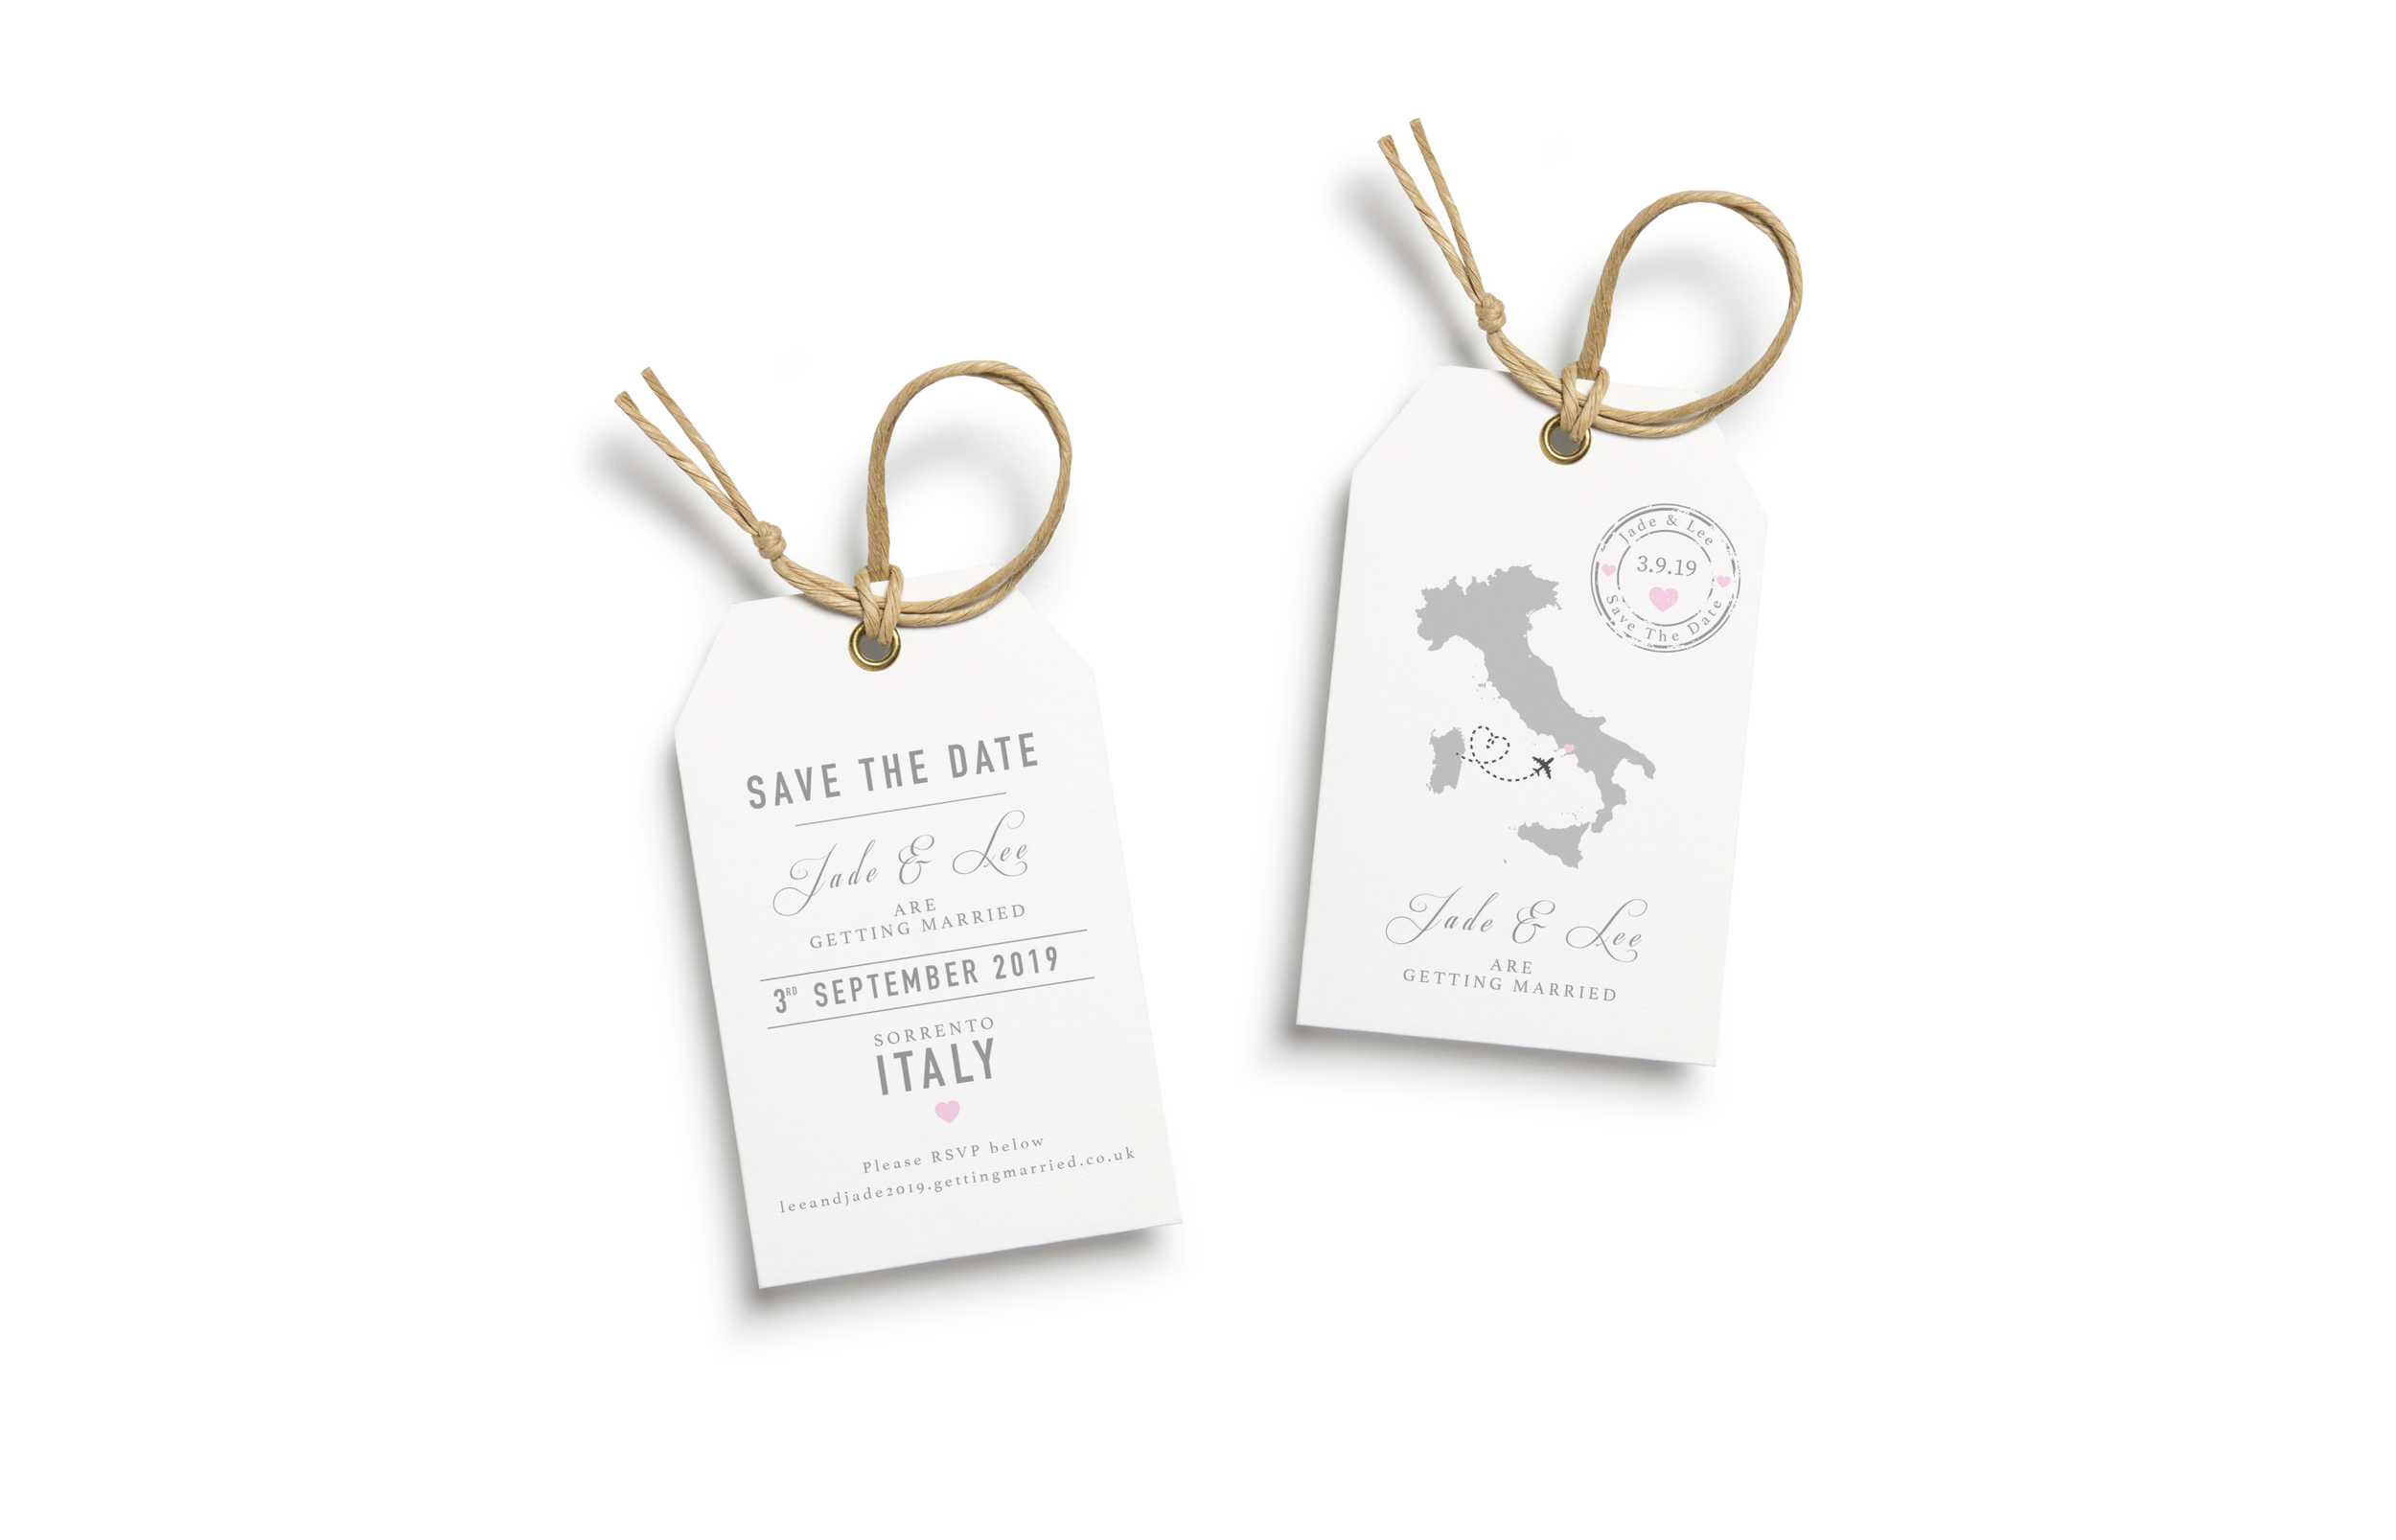 Wedding Save the Date Luggage Tag Design and Print